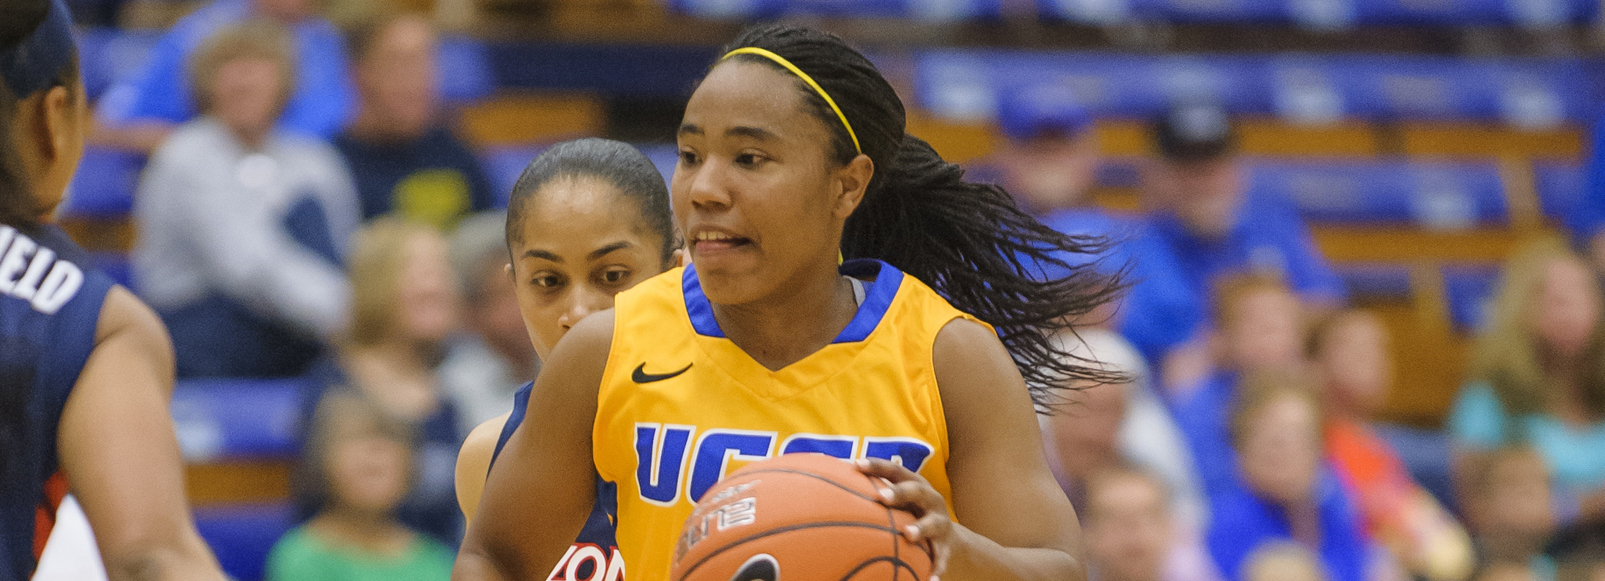 UCSB Falls 71-67 to San Diego State